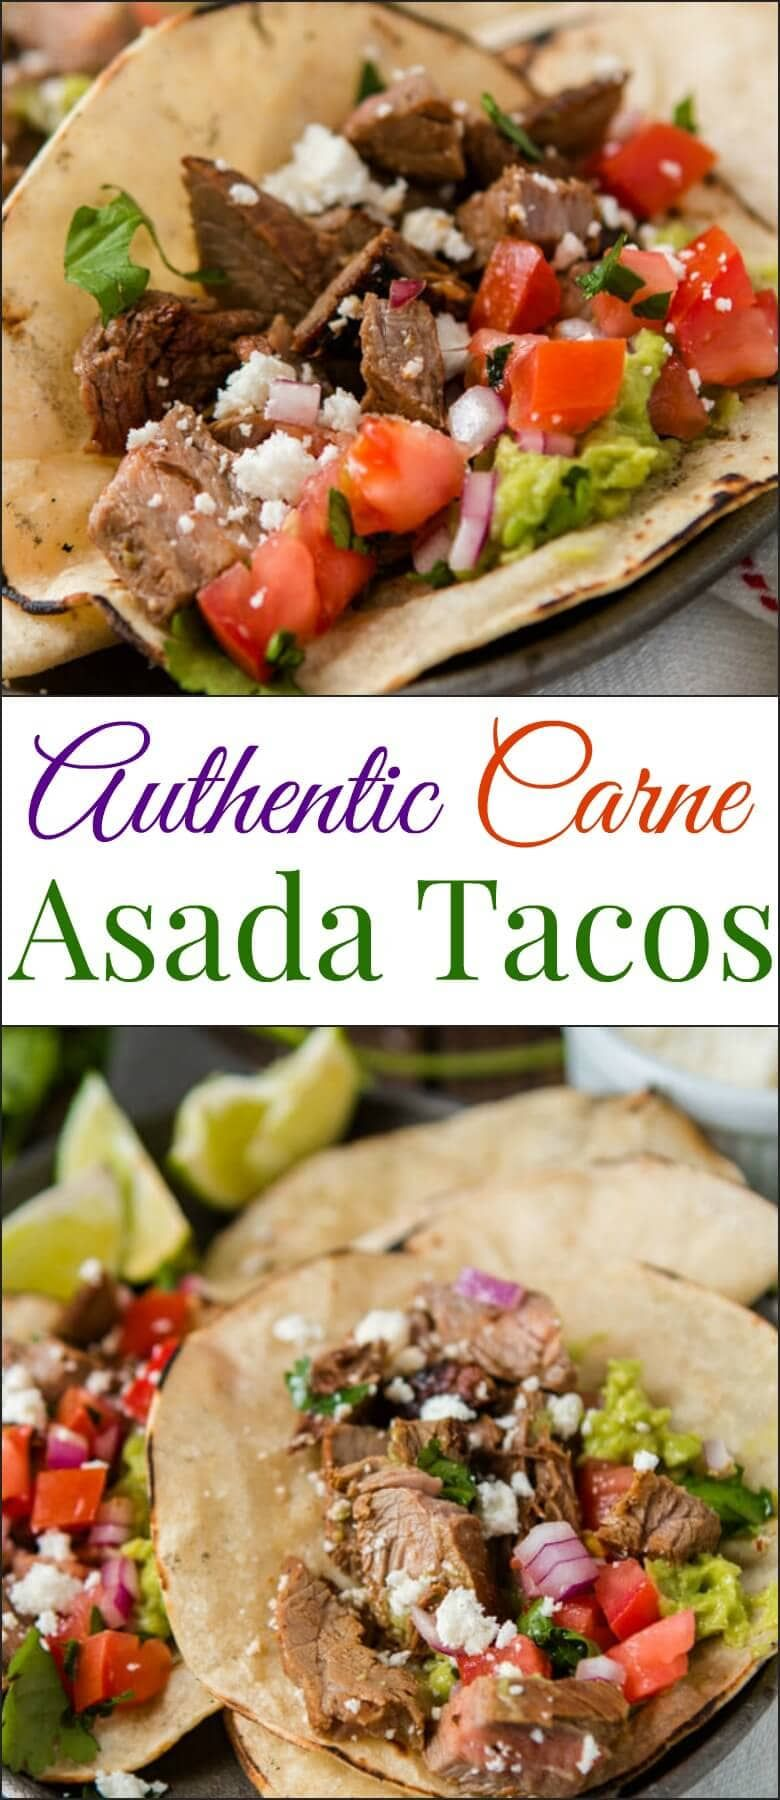 Authentic Carne Asada Tacos | Oh Sweet Basil